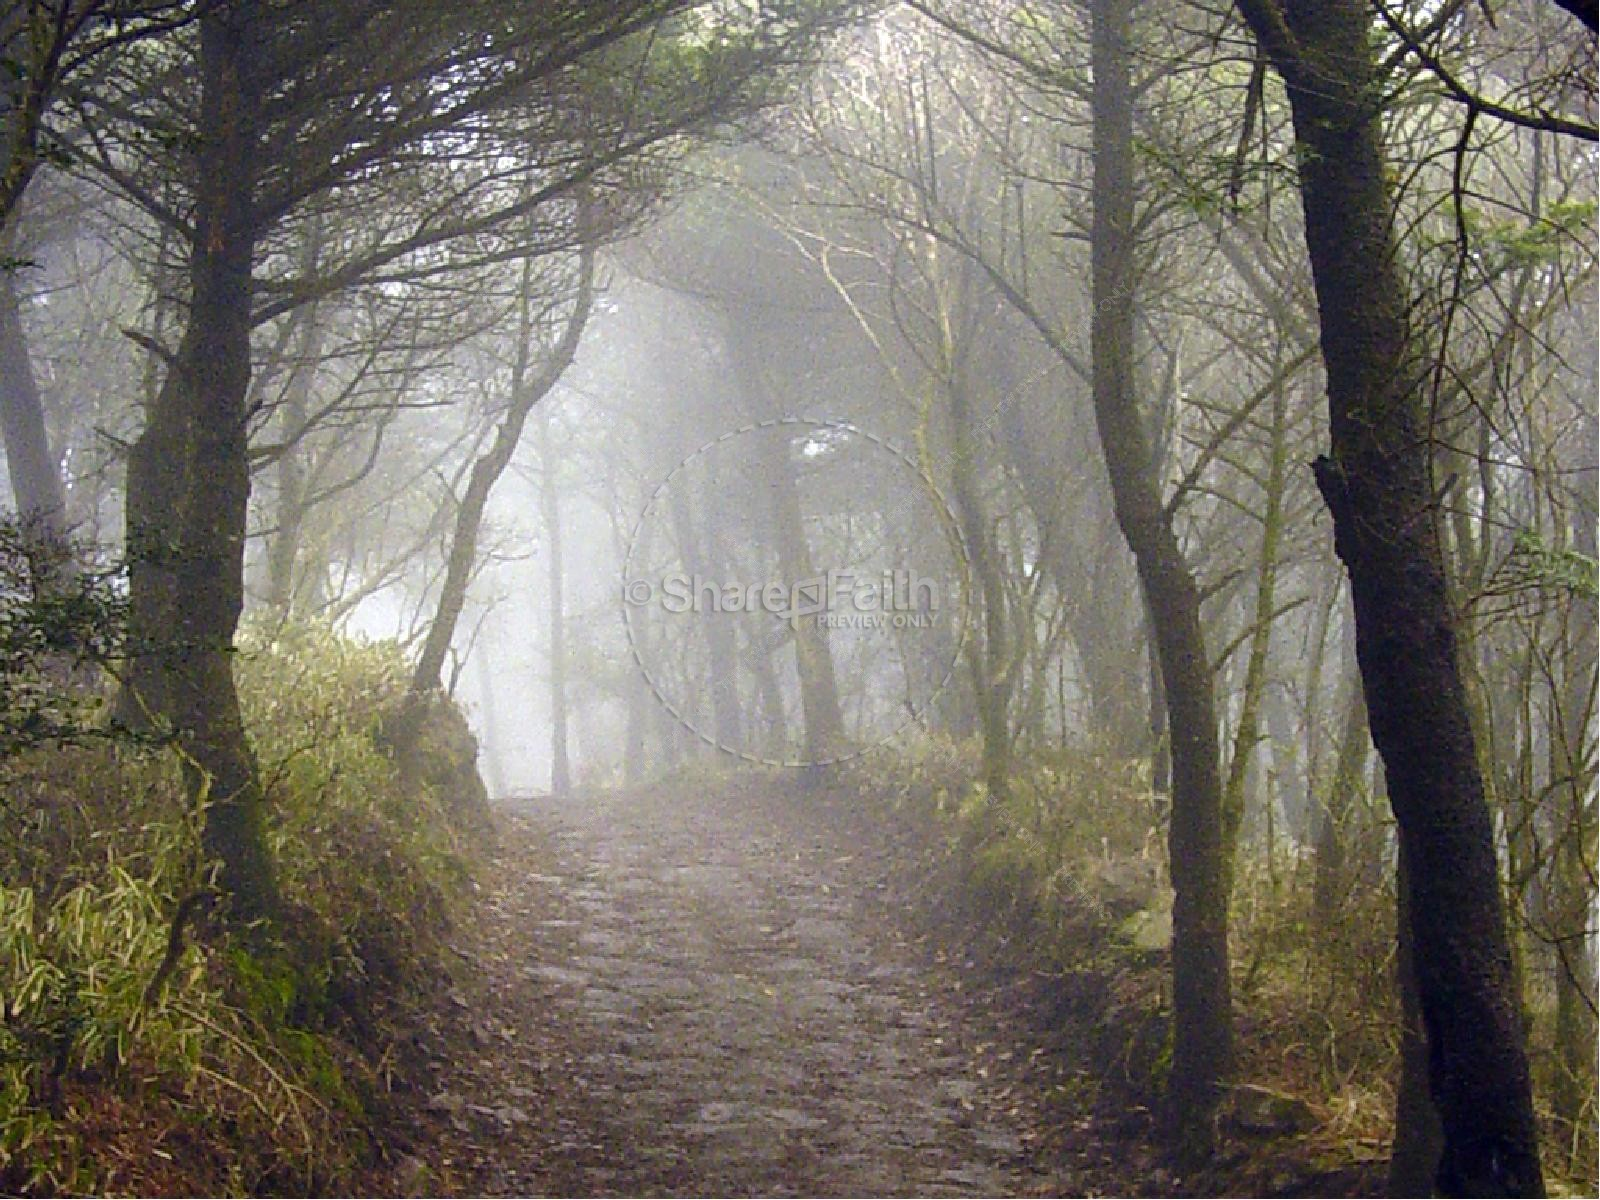 Inspirational Paths: Inspirational Path In The Woods And Quote From Proverbs